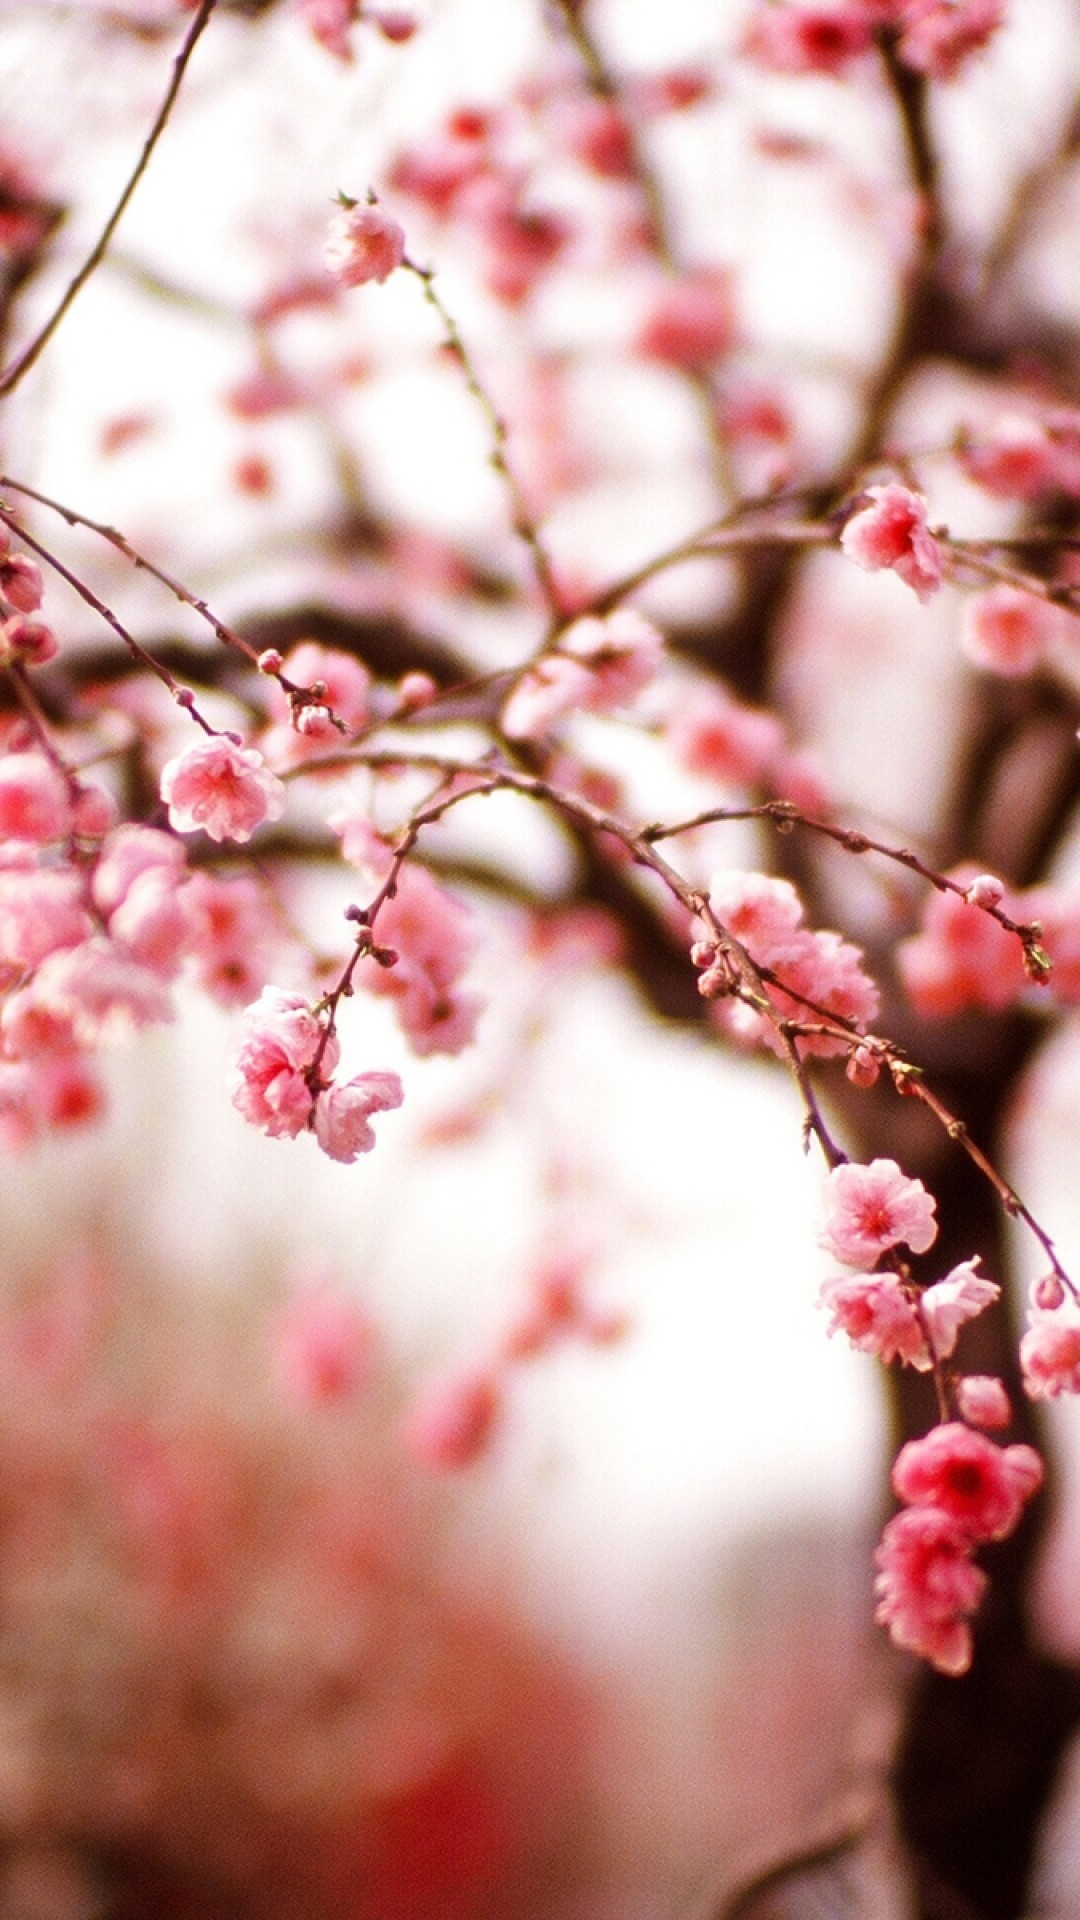 Res: 1080x1920, Cherry Blossom, Branches, Blurred, Sakura